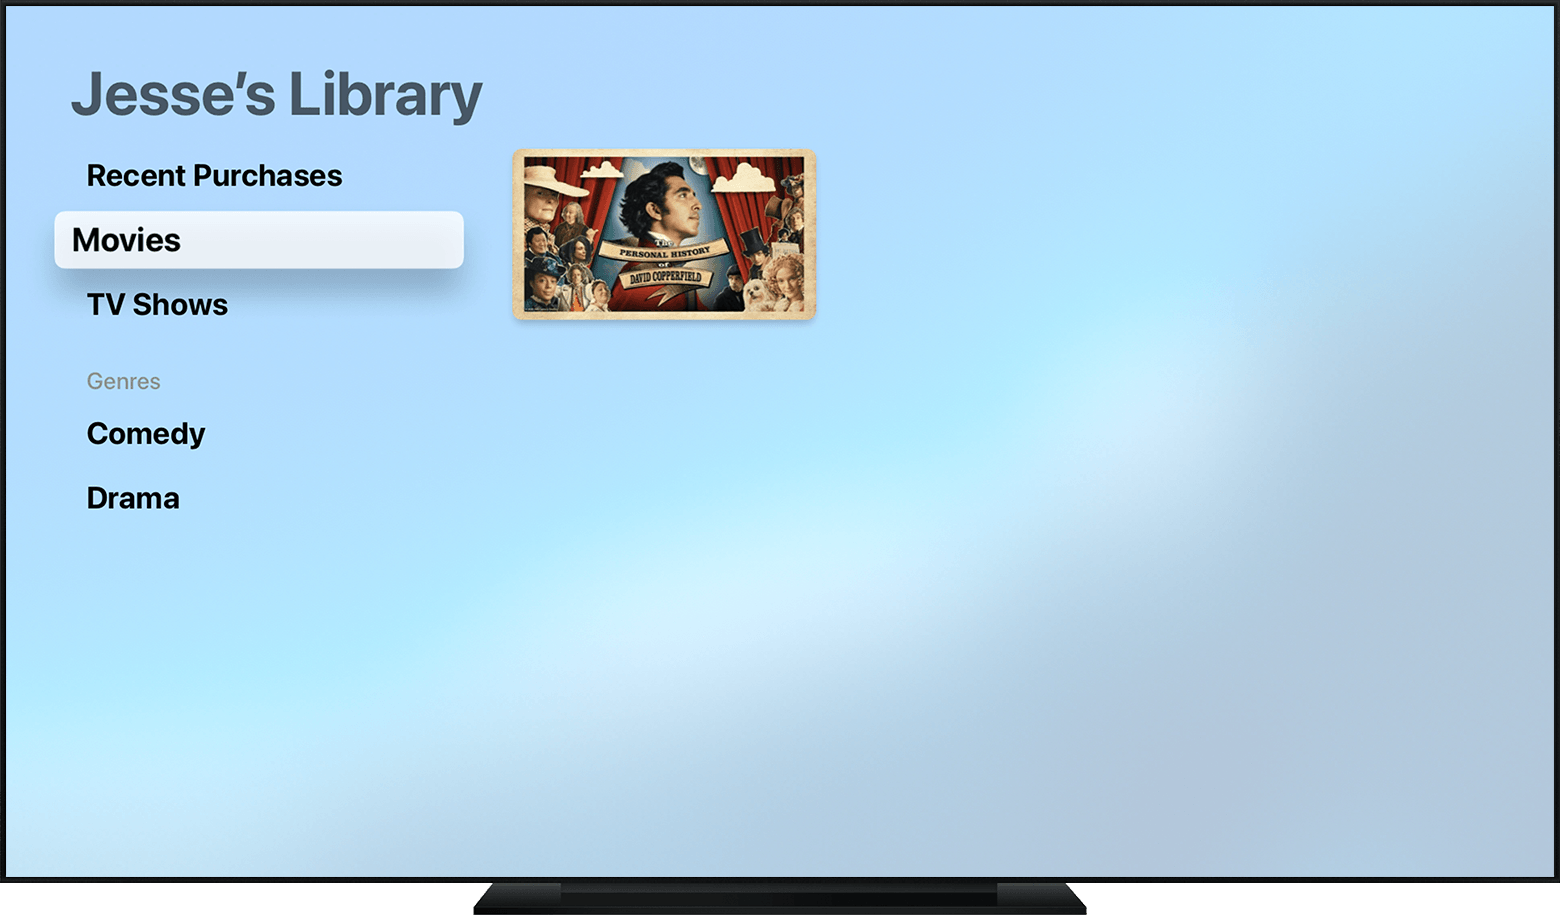 Apple TV showing movies in Jesse's library.